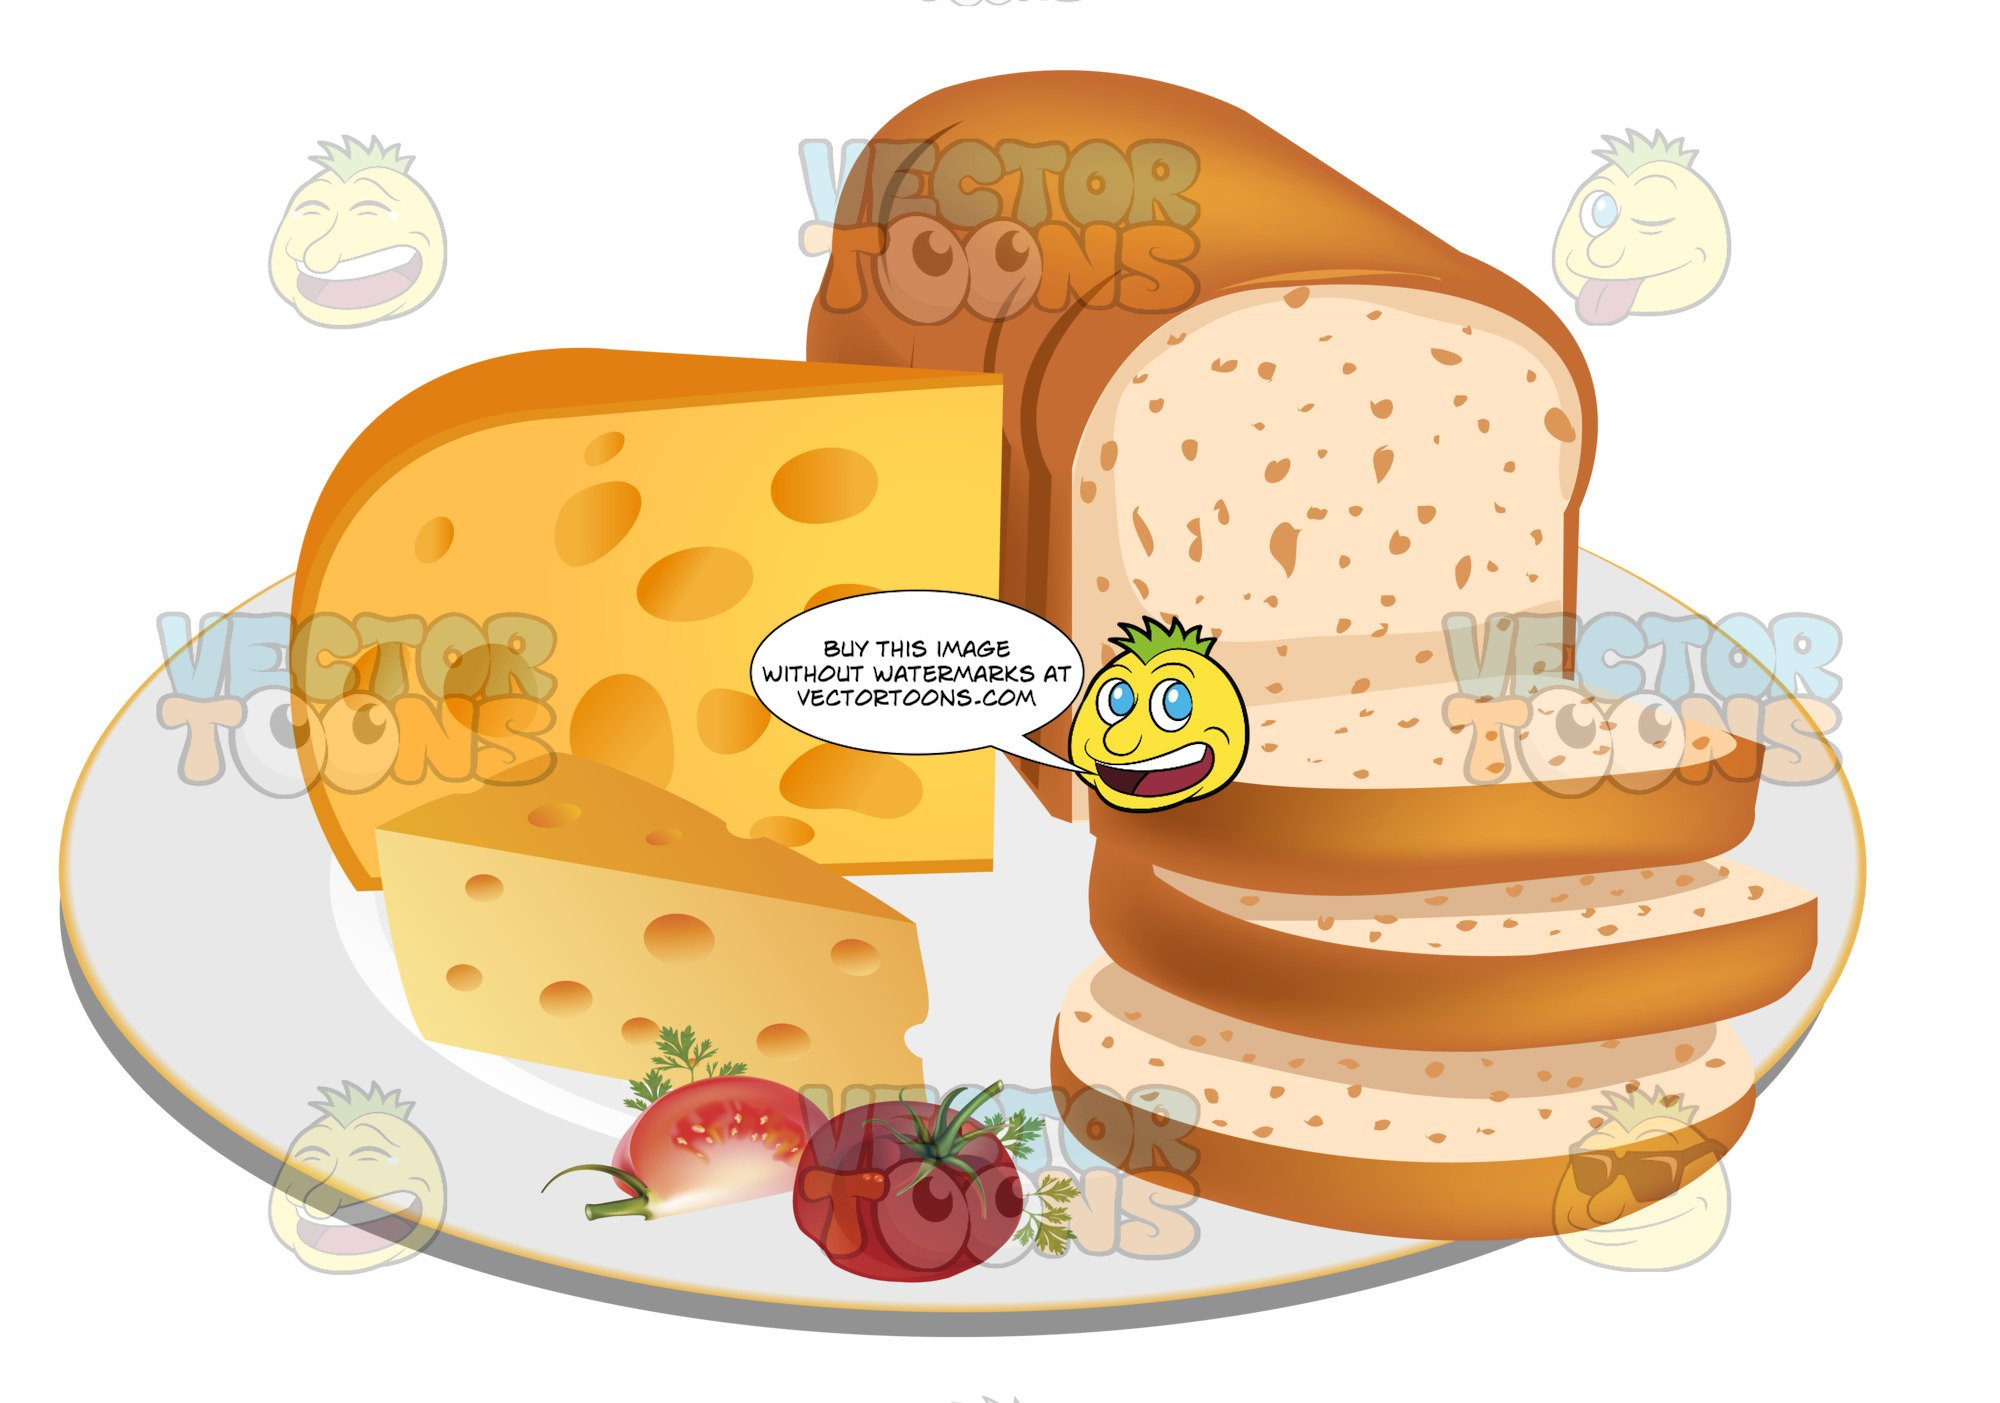 Cheese plater clipart jpg transparent download Sliced Loaf Of Bread With Cheese On A Plate jpg transparent download